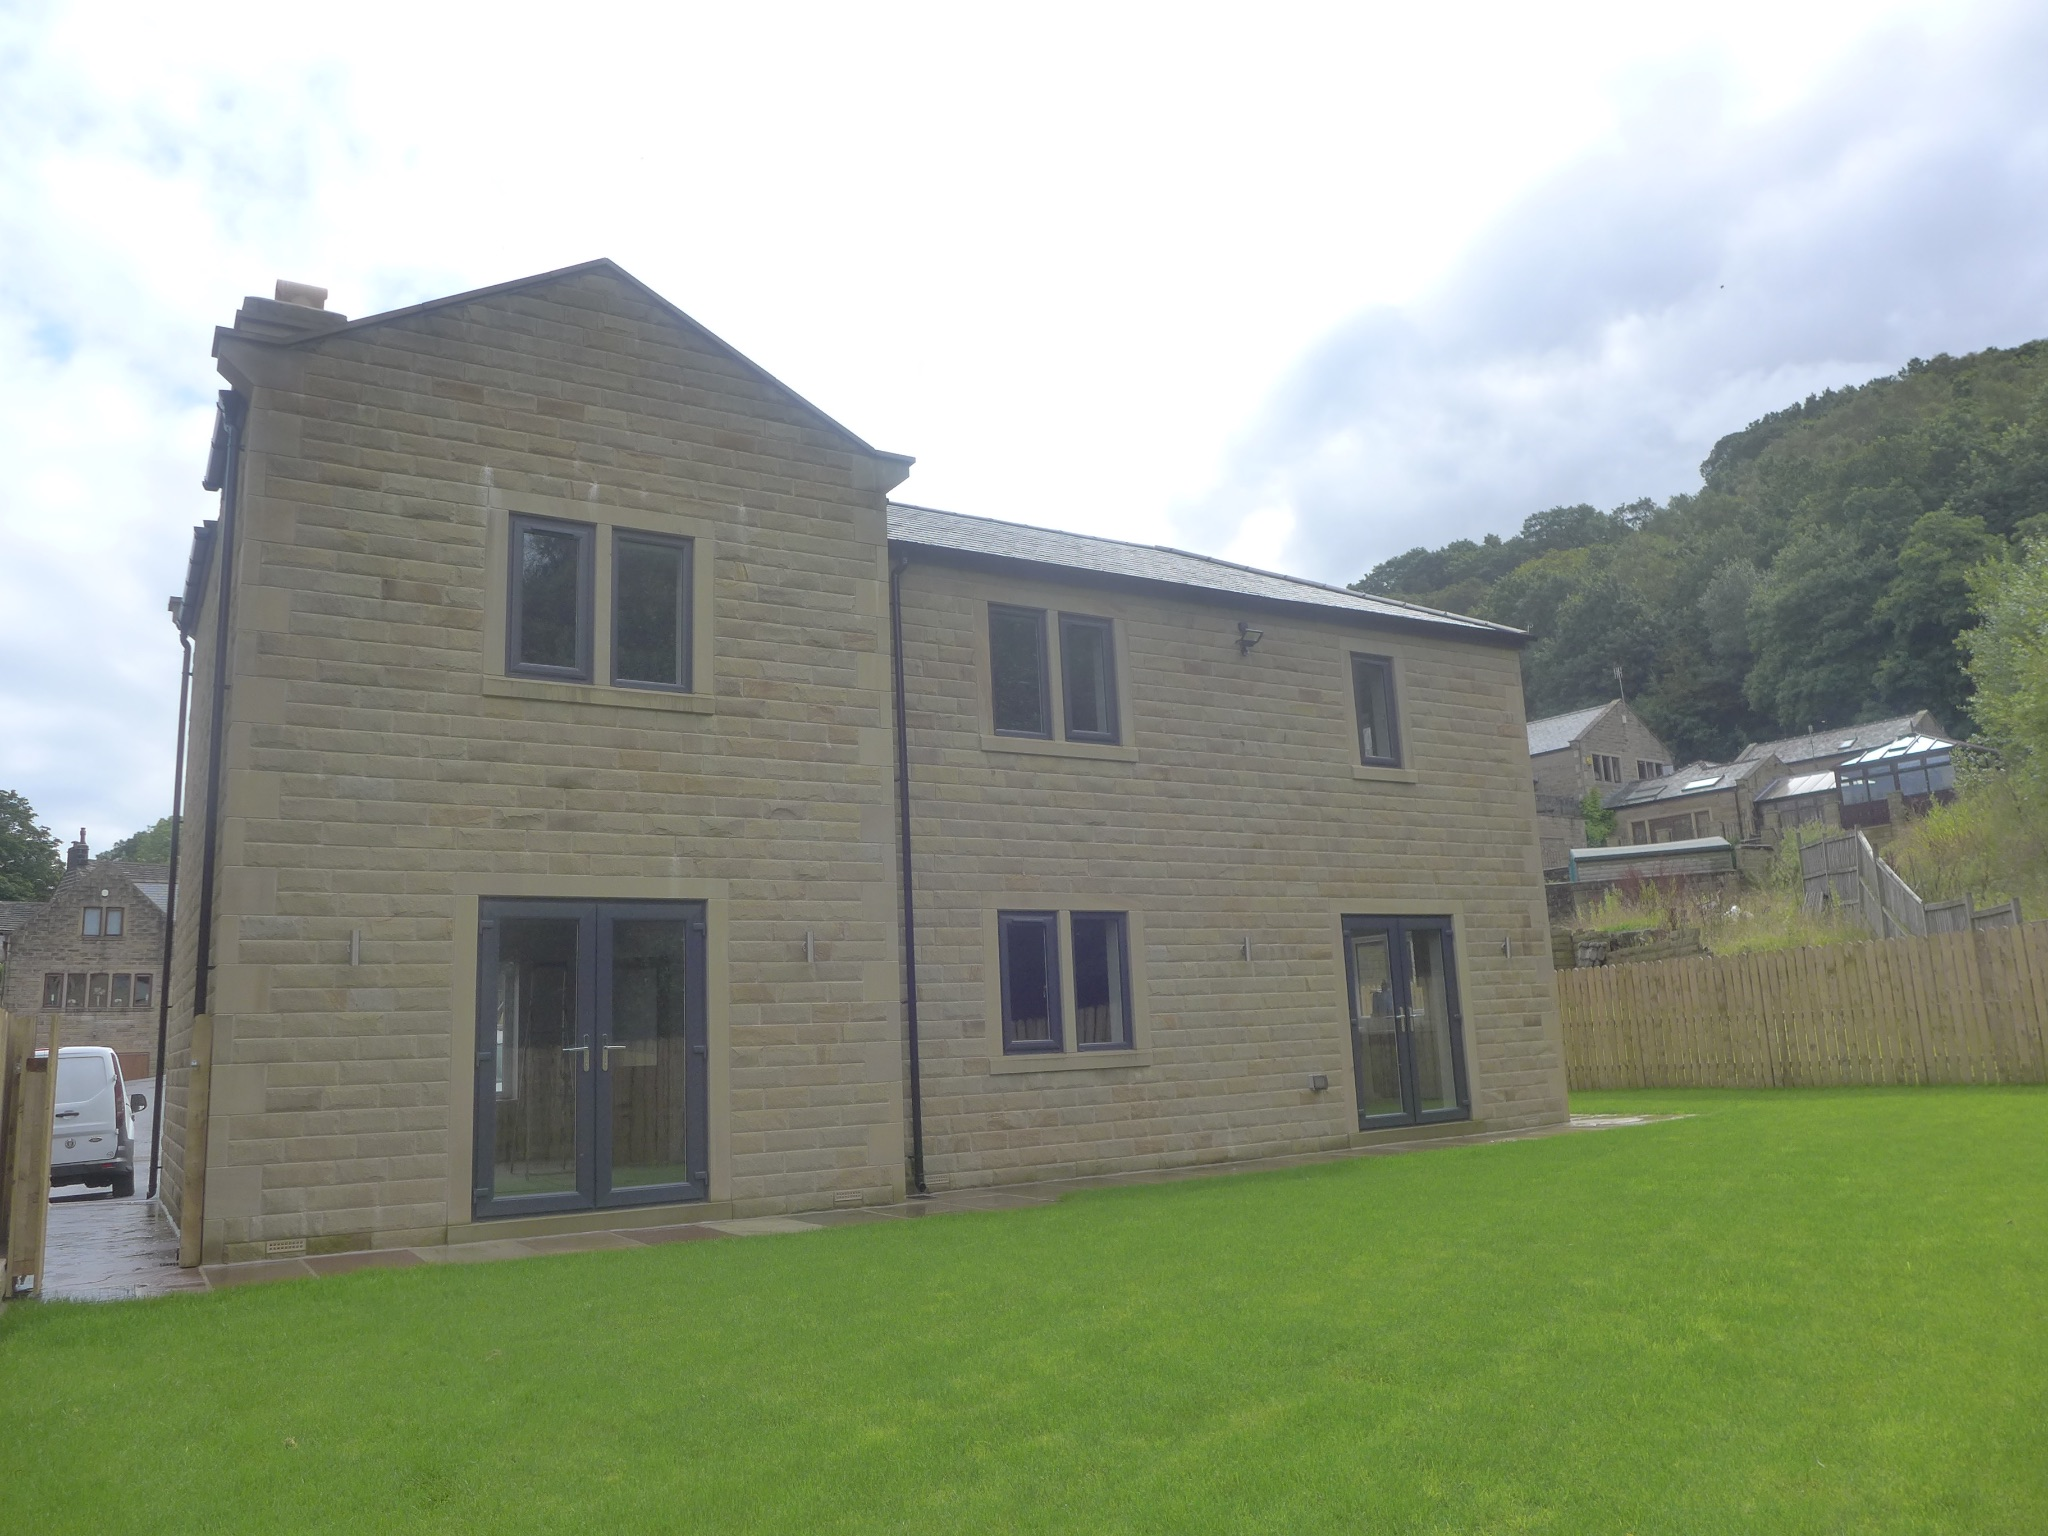 5 bedroom detached house For Sale in Todmorden - Photograph 21.